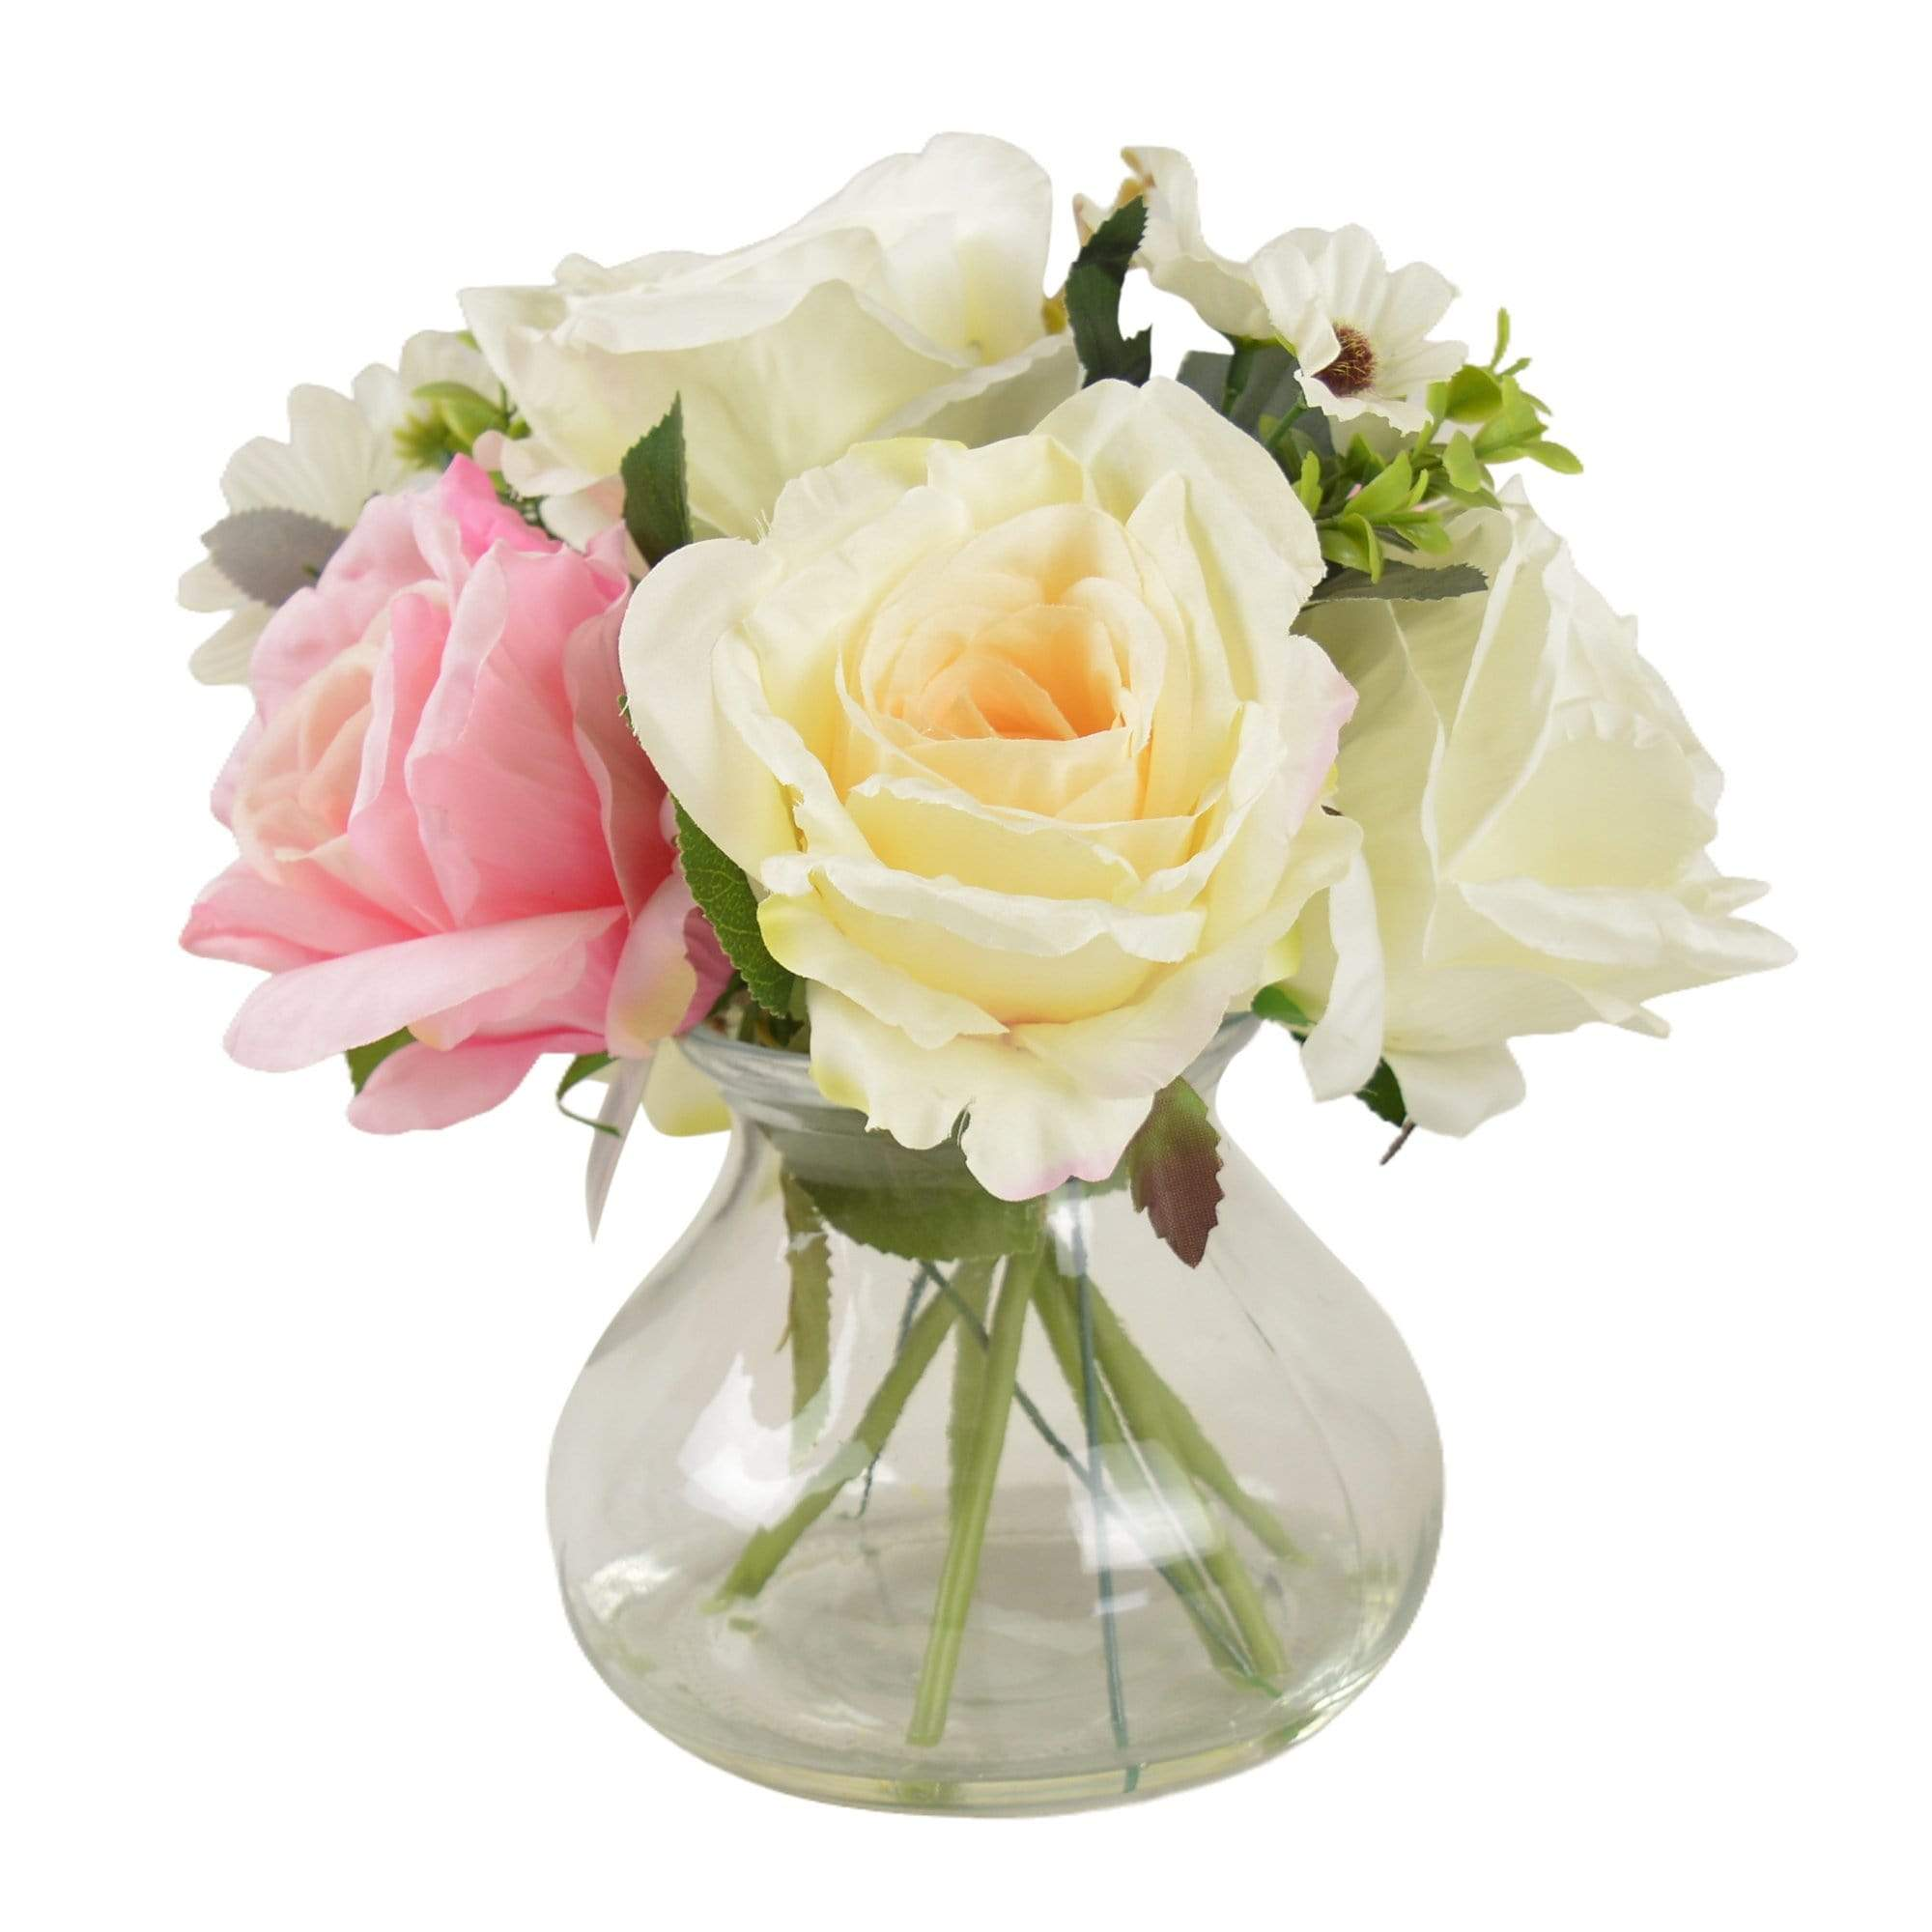 The Flower Patch Roses & Daisies Cream & Dusky Pink in Glass Vase 26cm 6PK